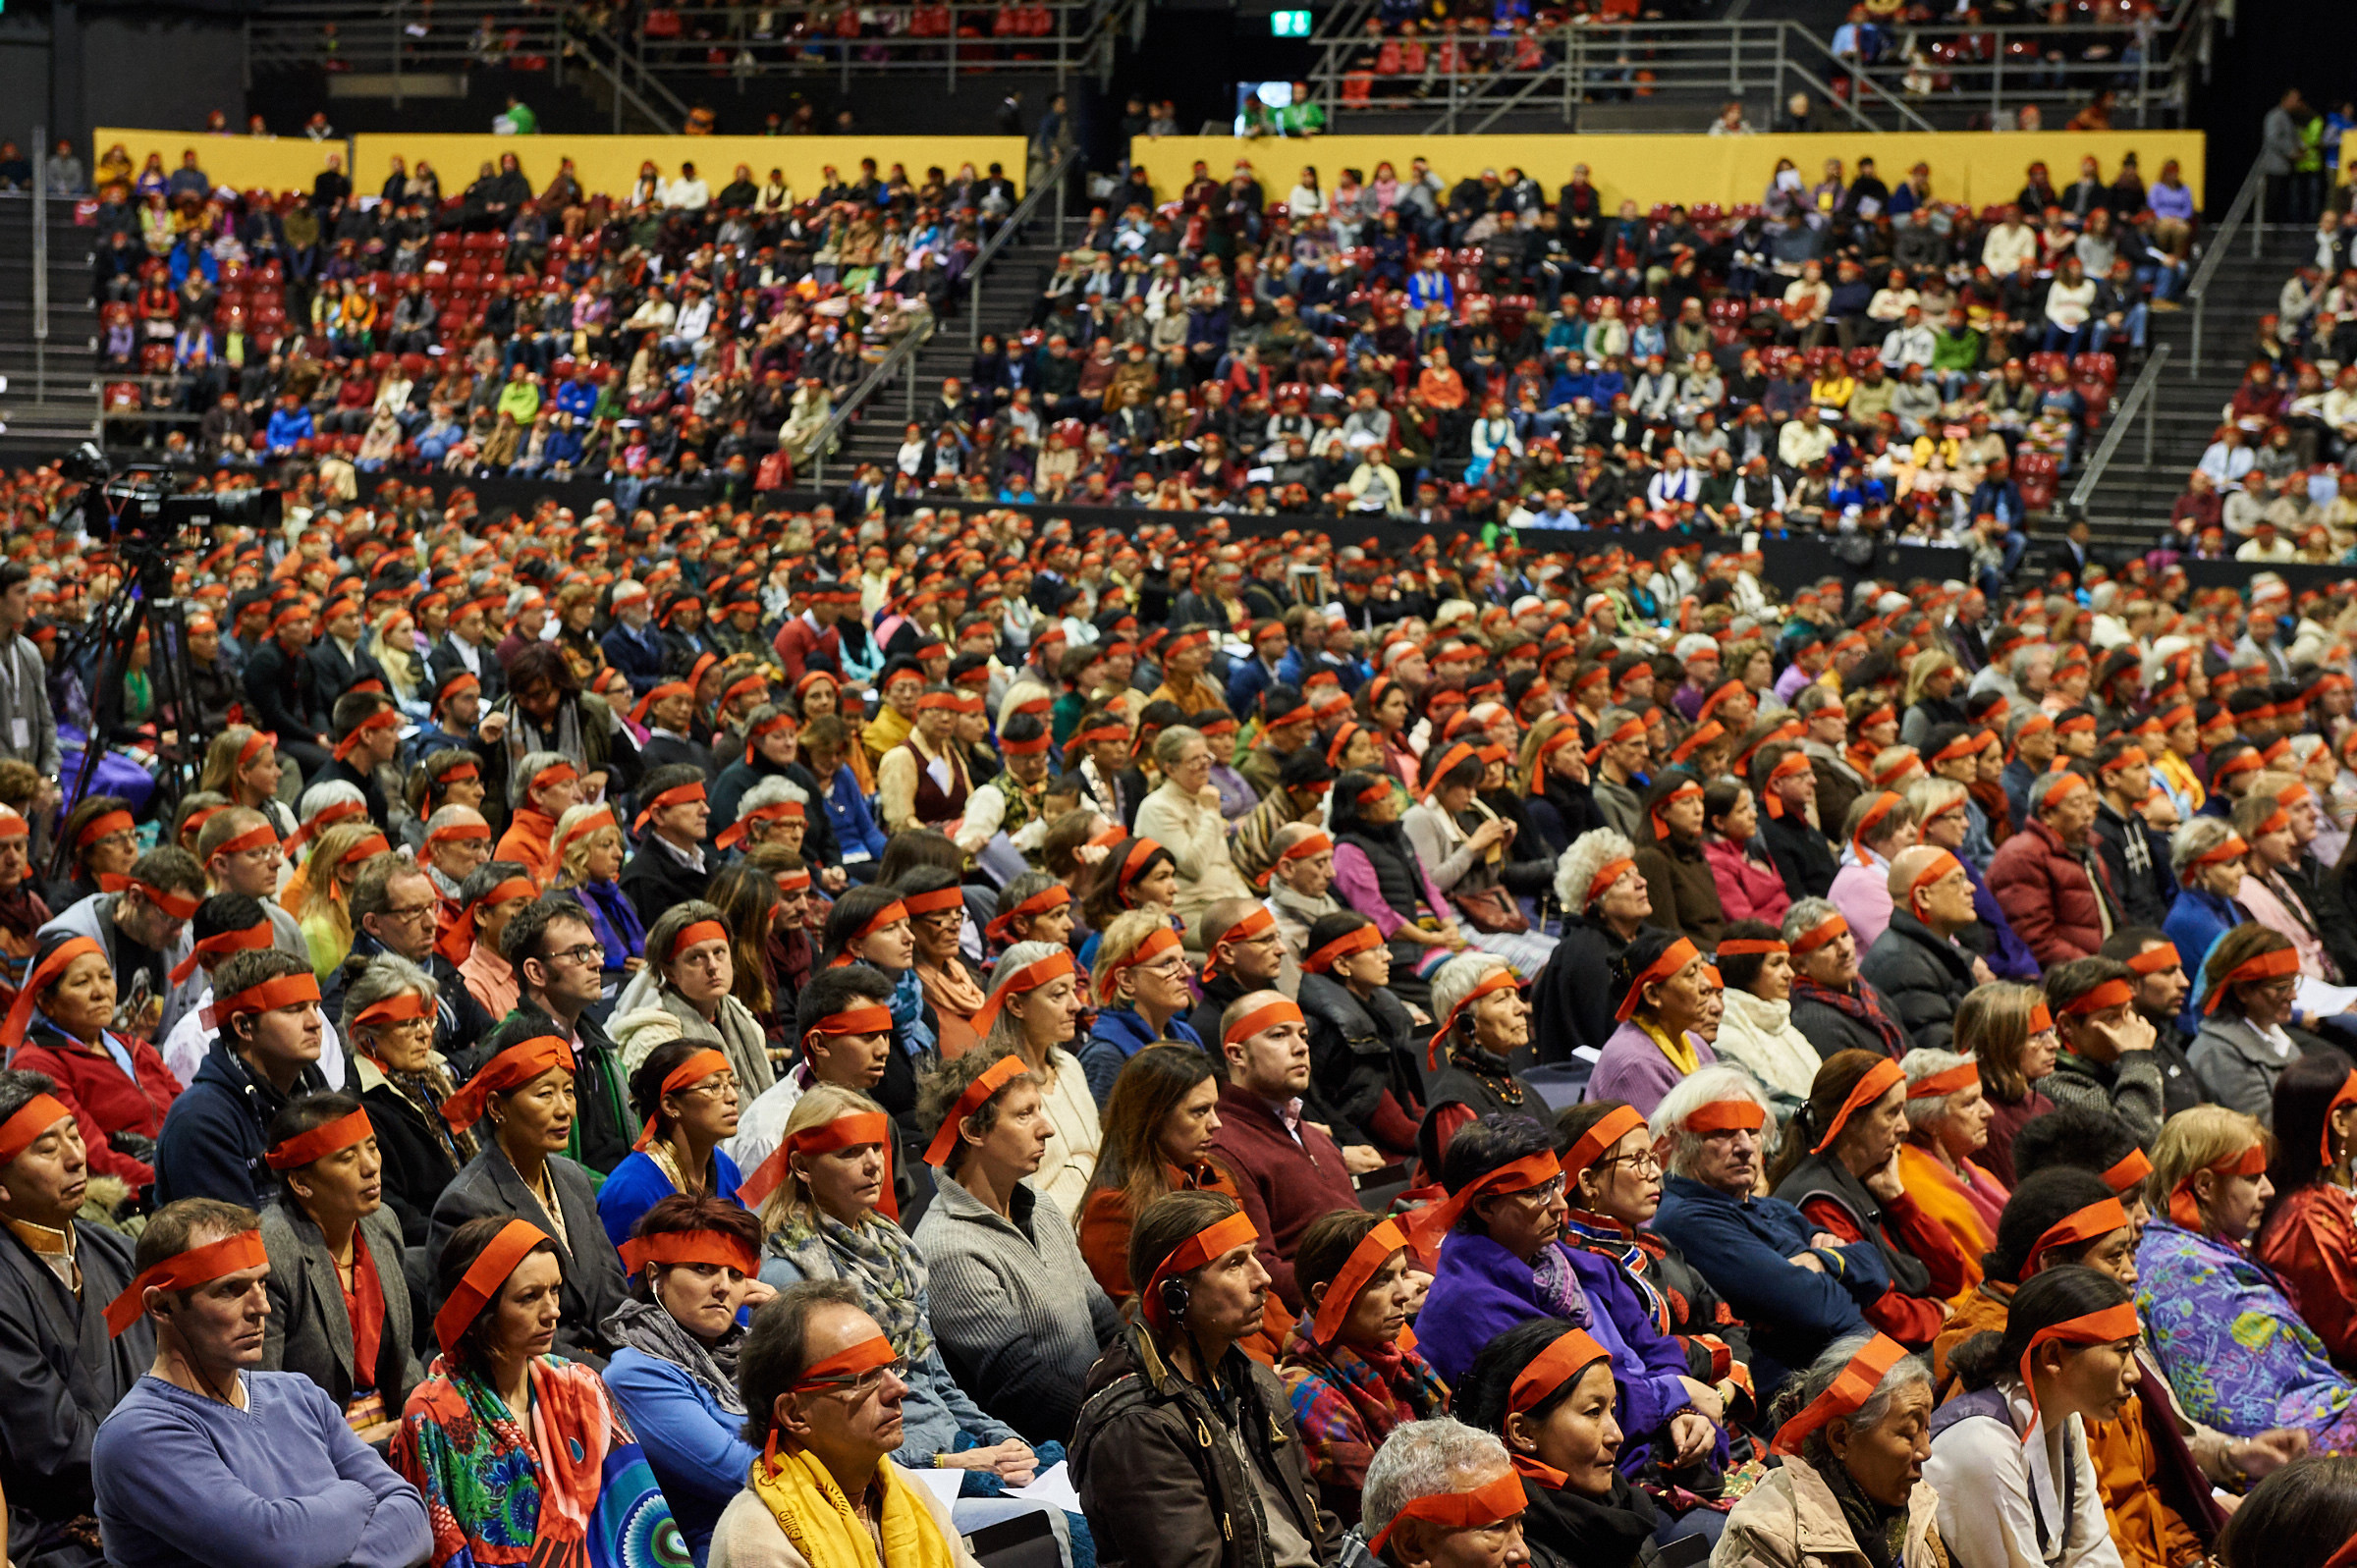 A view of the audience wearing ritual blindfolds is Holiness the Dalai Lama's conferring of the Avalokiteshvara Empowerment at St Jakobshalle in Basel, Switzerland on February 8, 2015. Photo/Olivier Adam